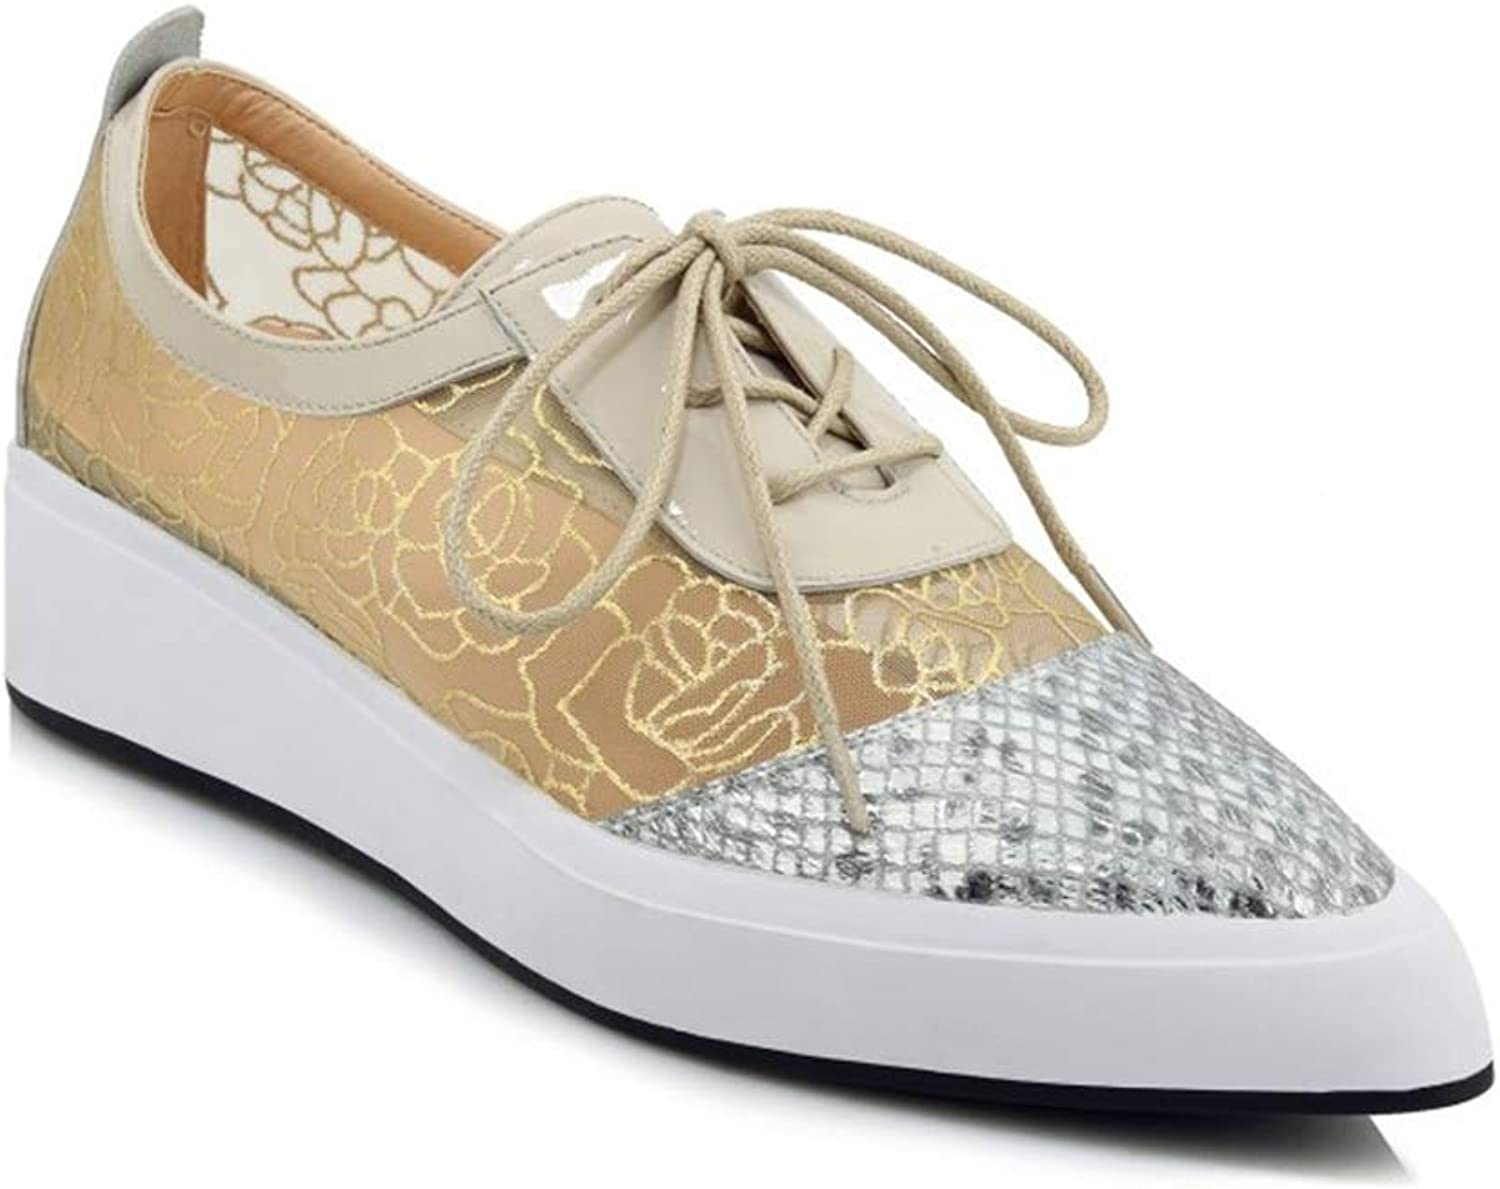 Women's Fashion shoes New Spring Lace Up Deck shoes Leather + Mesh Ladies Low-Top Casual shoes Sequin Pointed Flat Platform shoes,gold,38